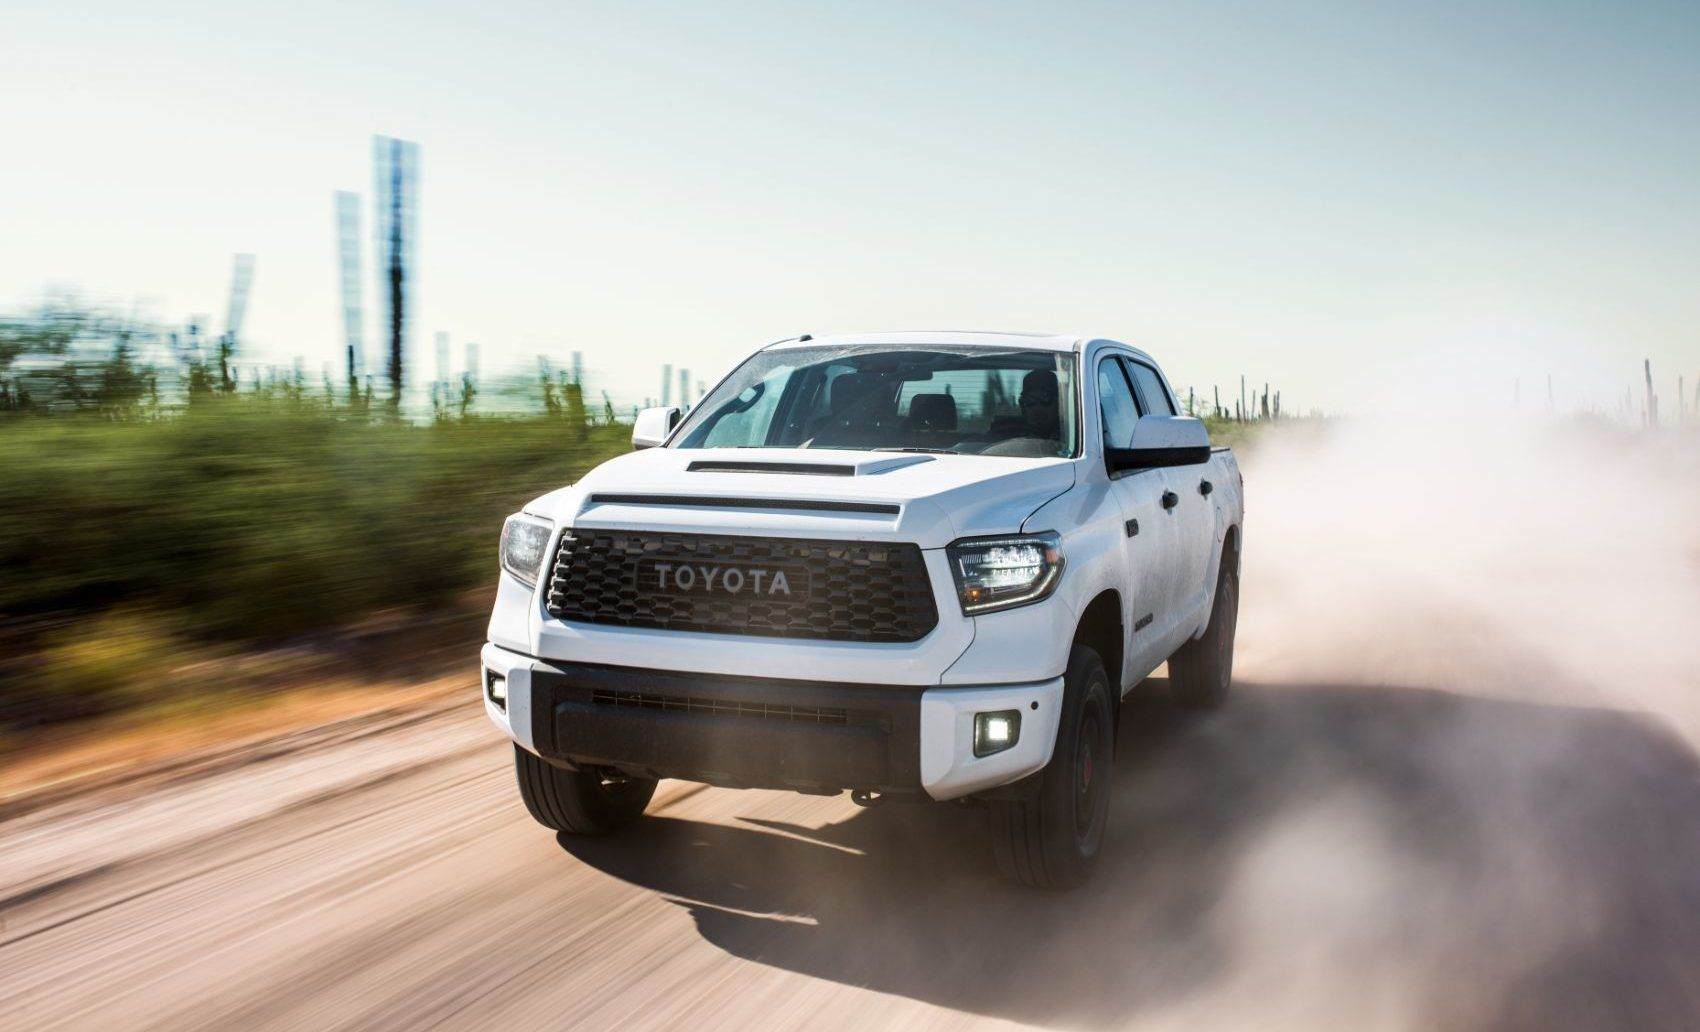 2019 Toyota Tundra Trd Pro Review No Terrain Too Tough Tundra Trd Toyota Tundra Trd Pro Tundra Trd Pro